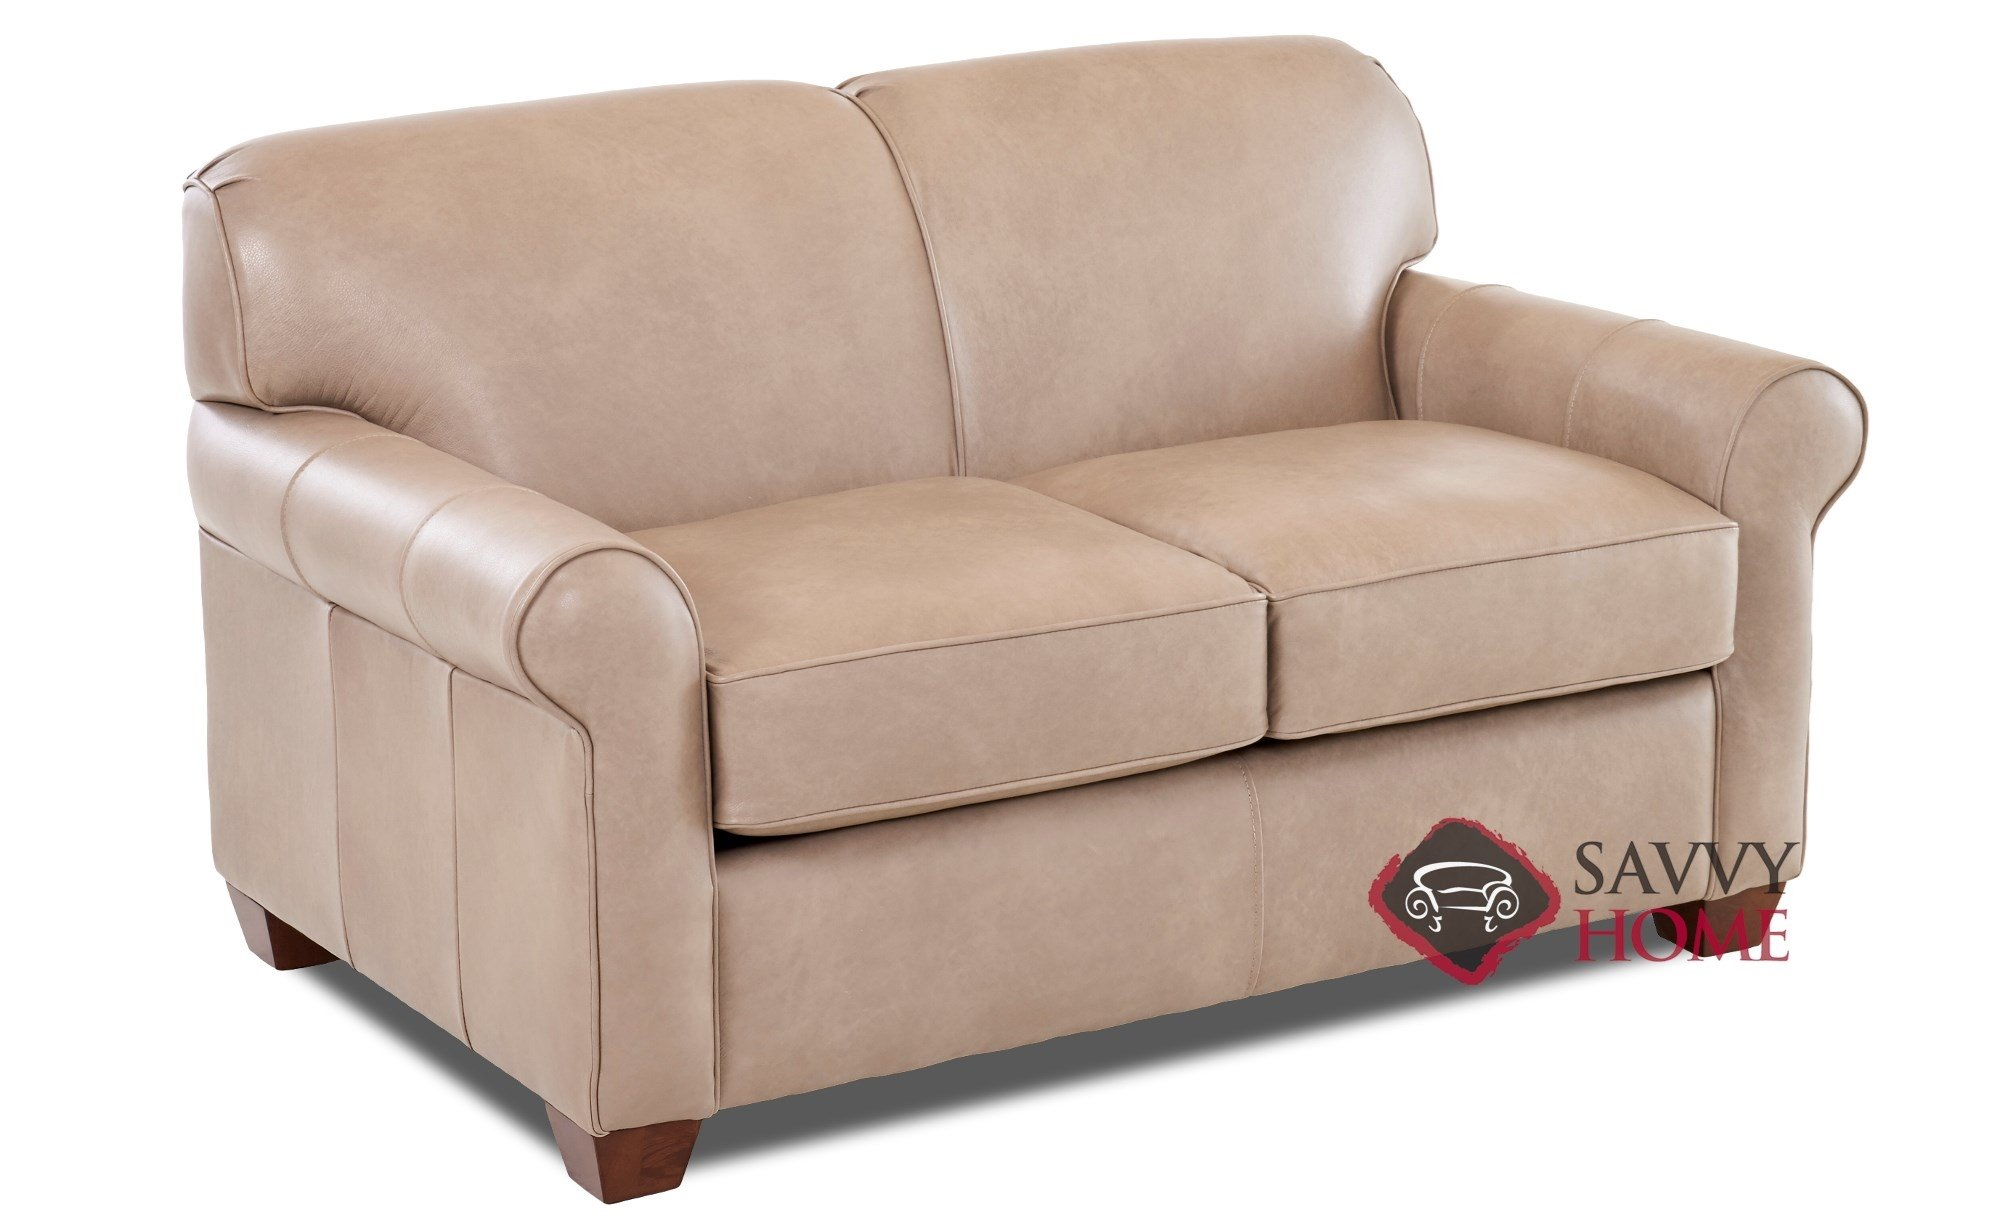 Calgary Leather Sleeper Sofas Twin By Savvy Is Fully